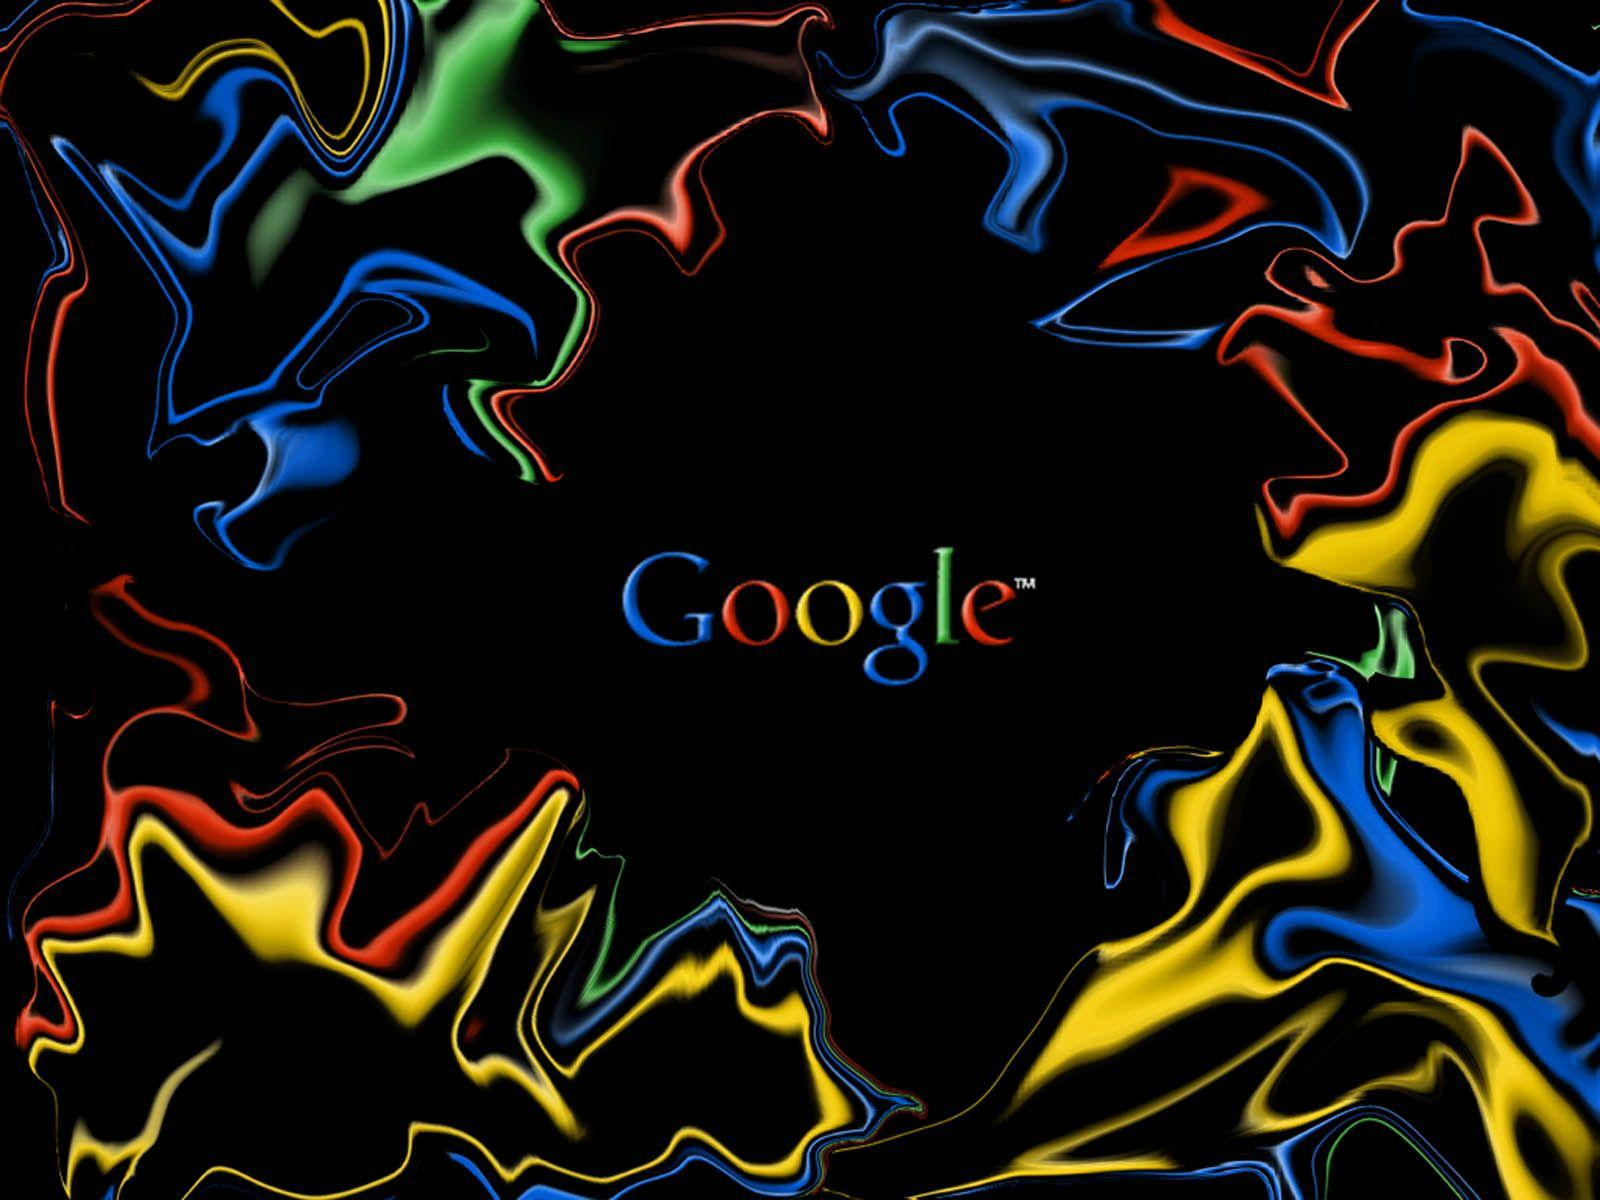 google backgrounds image wallpaper cave